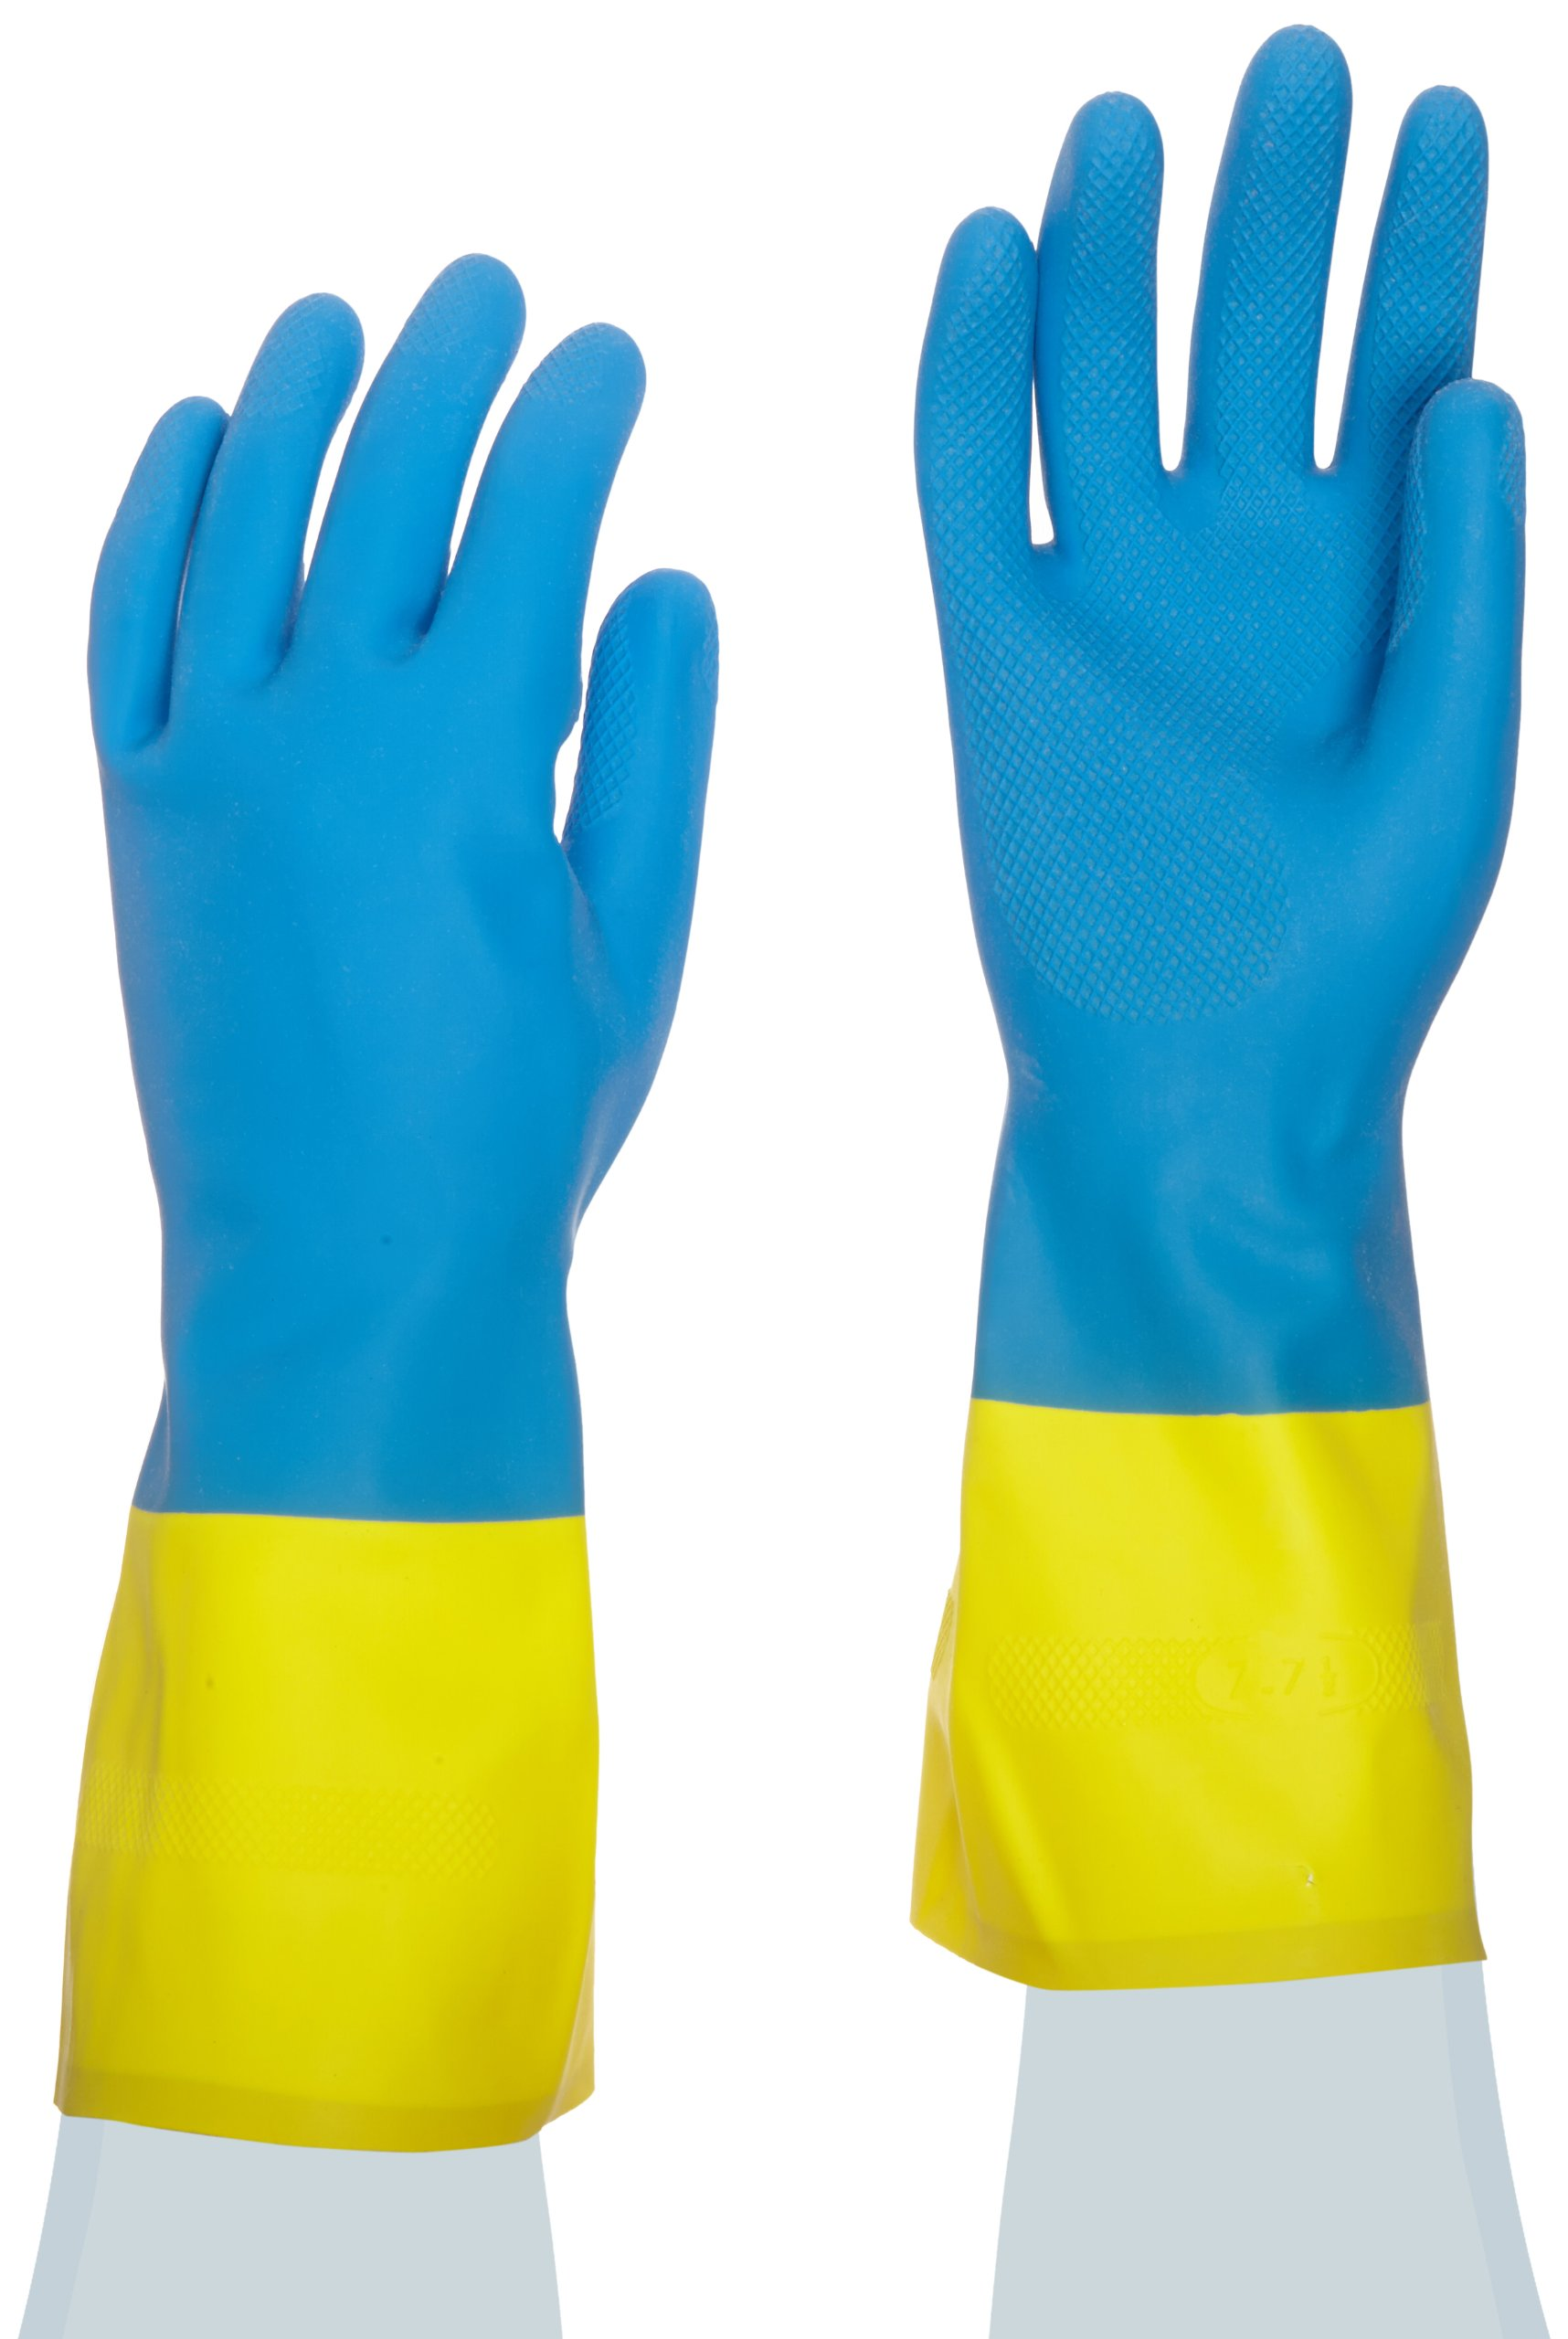 MAPA Two-Tone NS-53 Neoprene and Natural Latex Glove, Chemical Resistant, 0.028'' Thickness, 13'' Length, Size 7, Blue/Yellow (Bag of 12 Pairs)